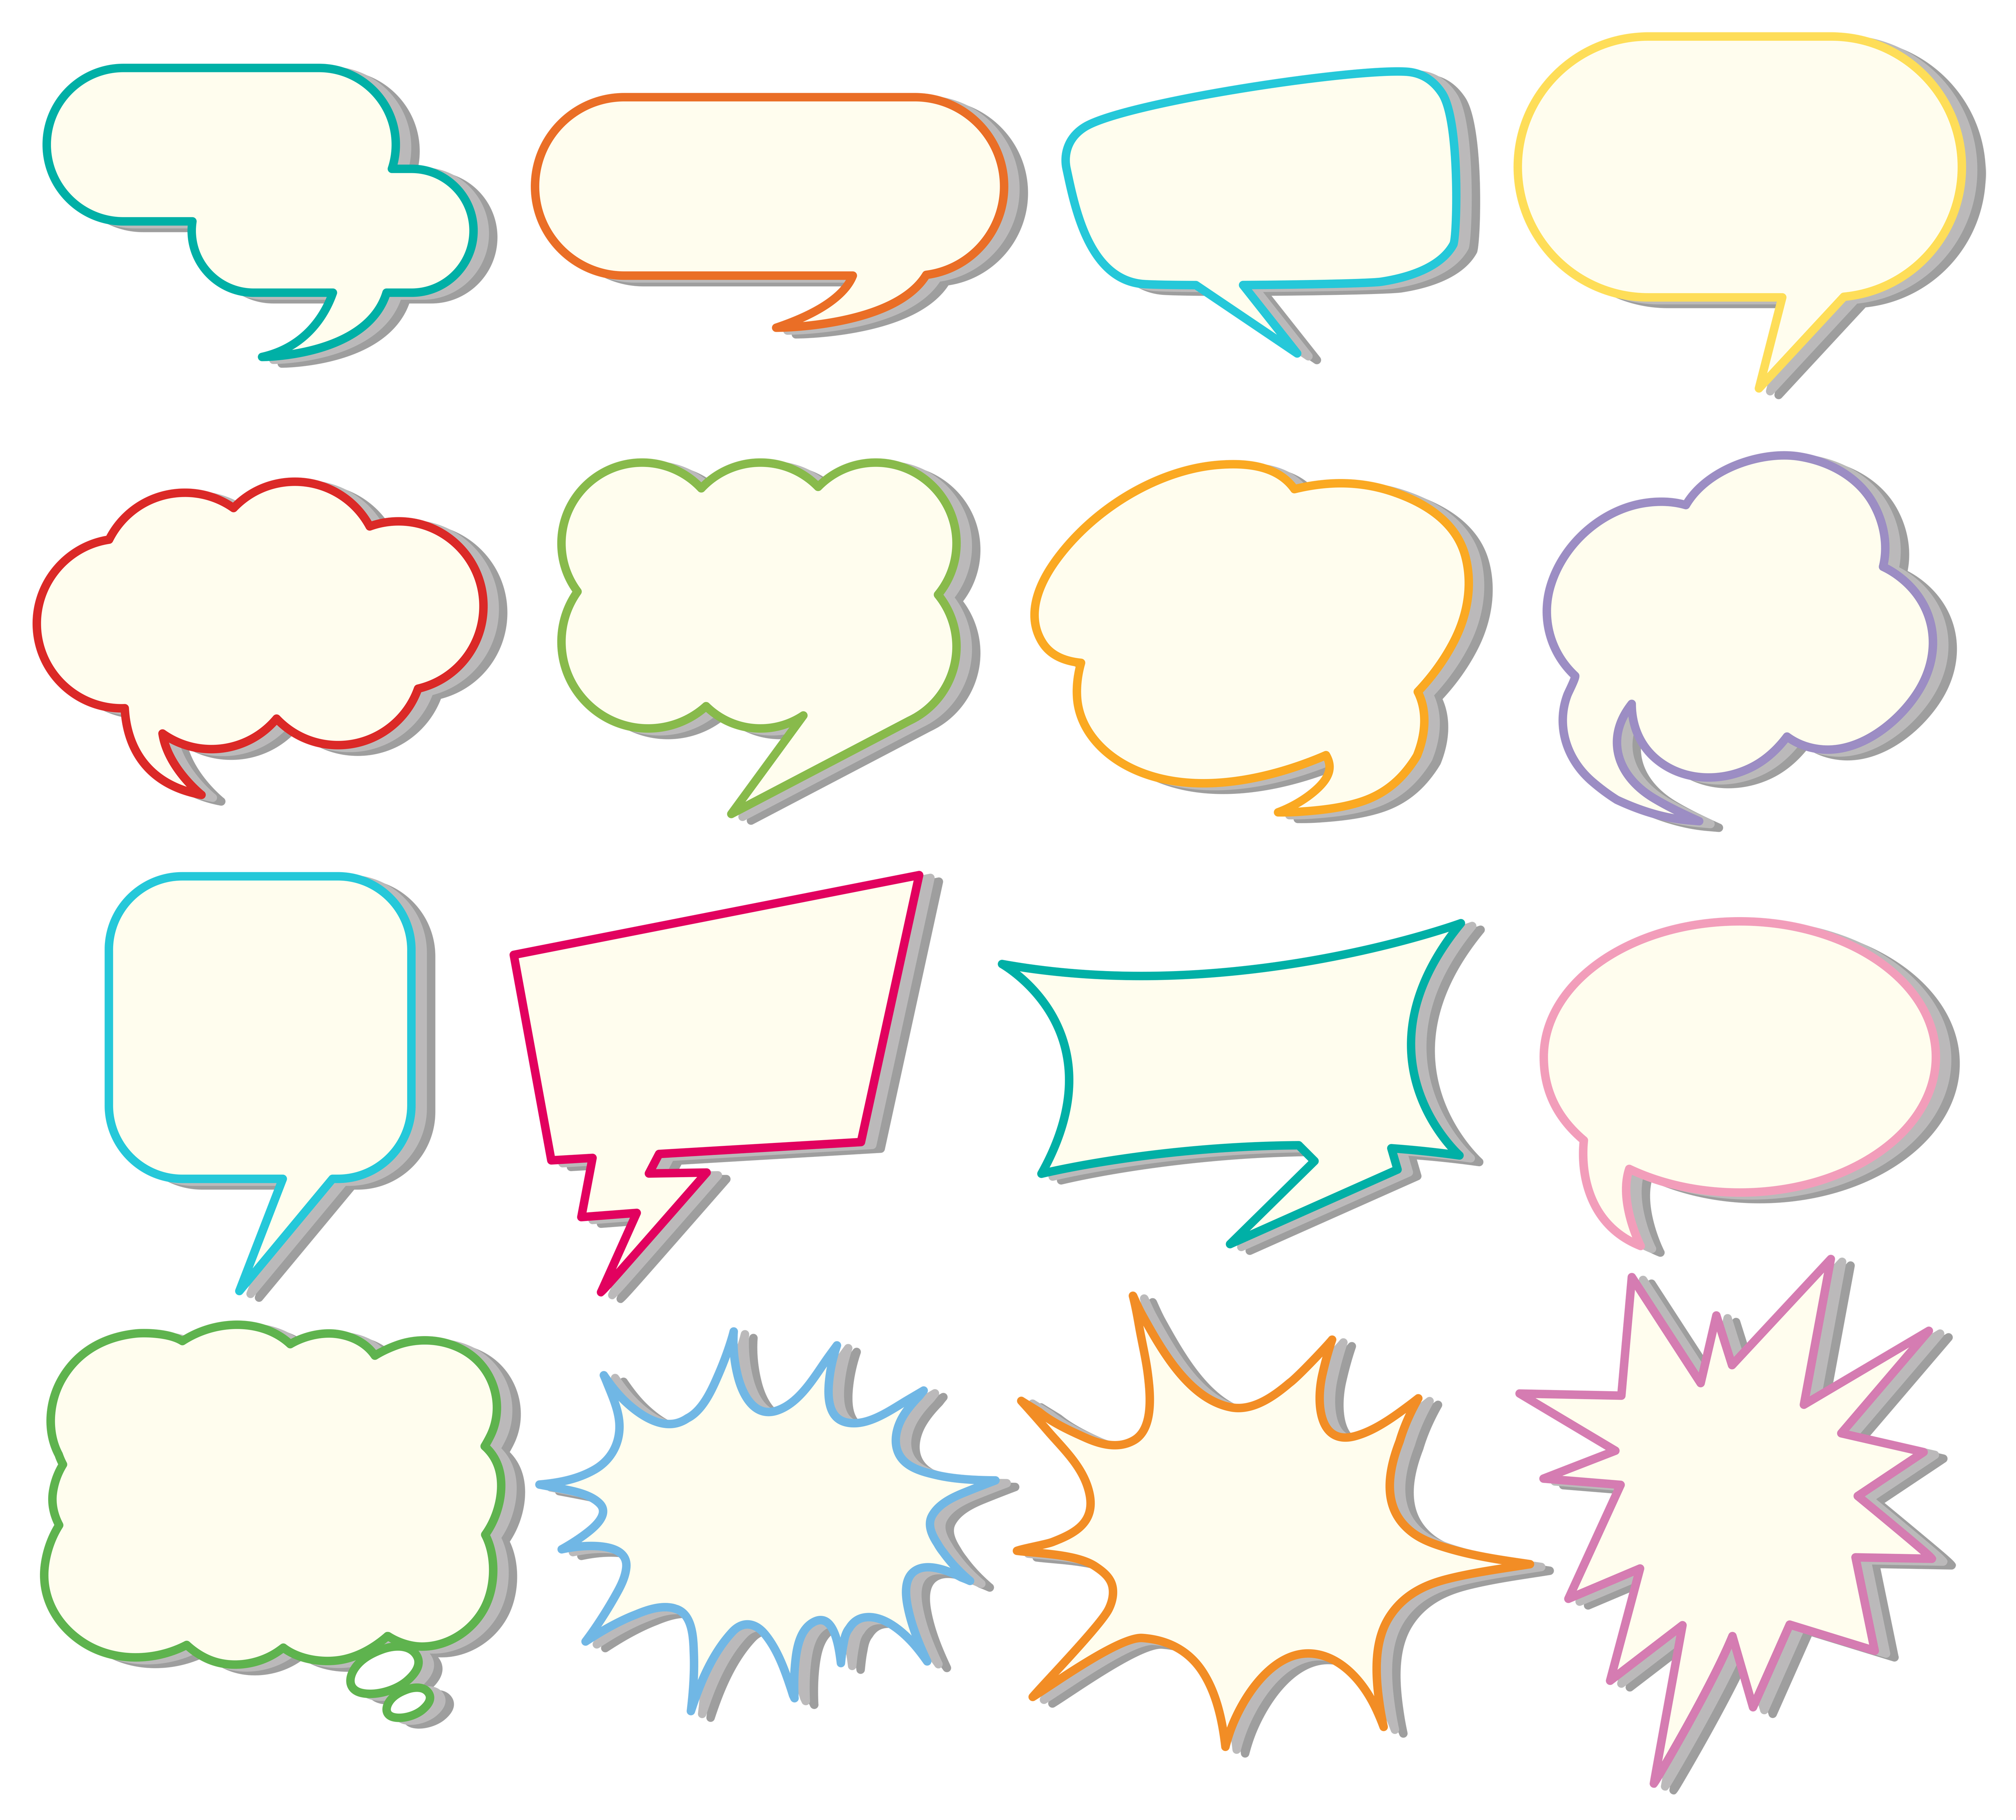 Speech bubble templates on white background - Download ...